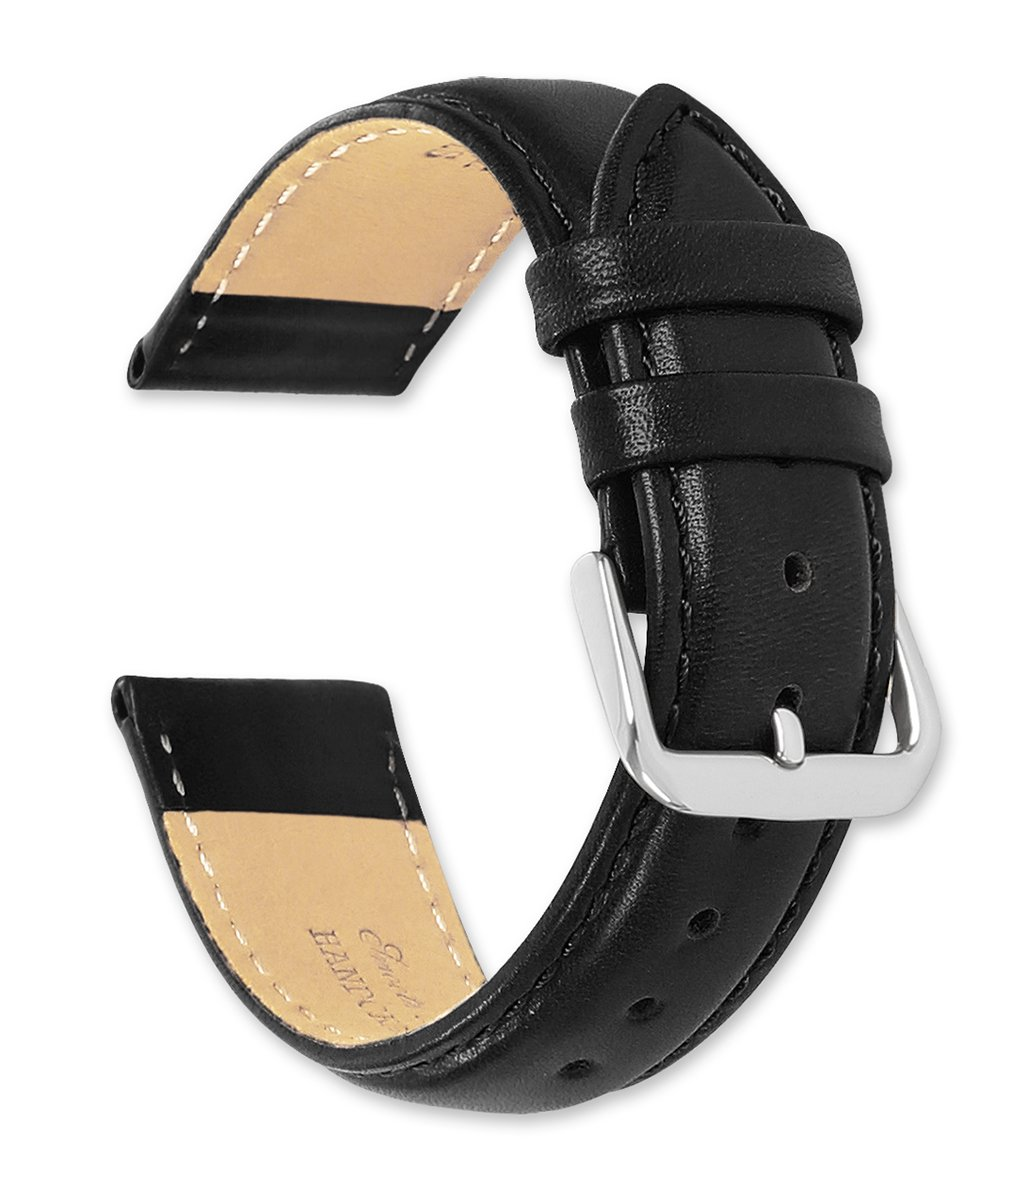 Smooth Leather Watchband Black 12mm Short Watch band - by deBeer